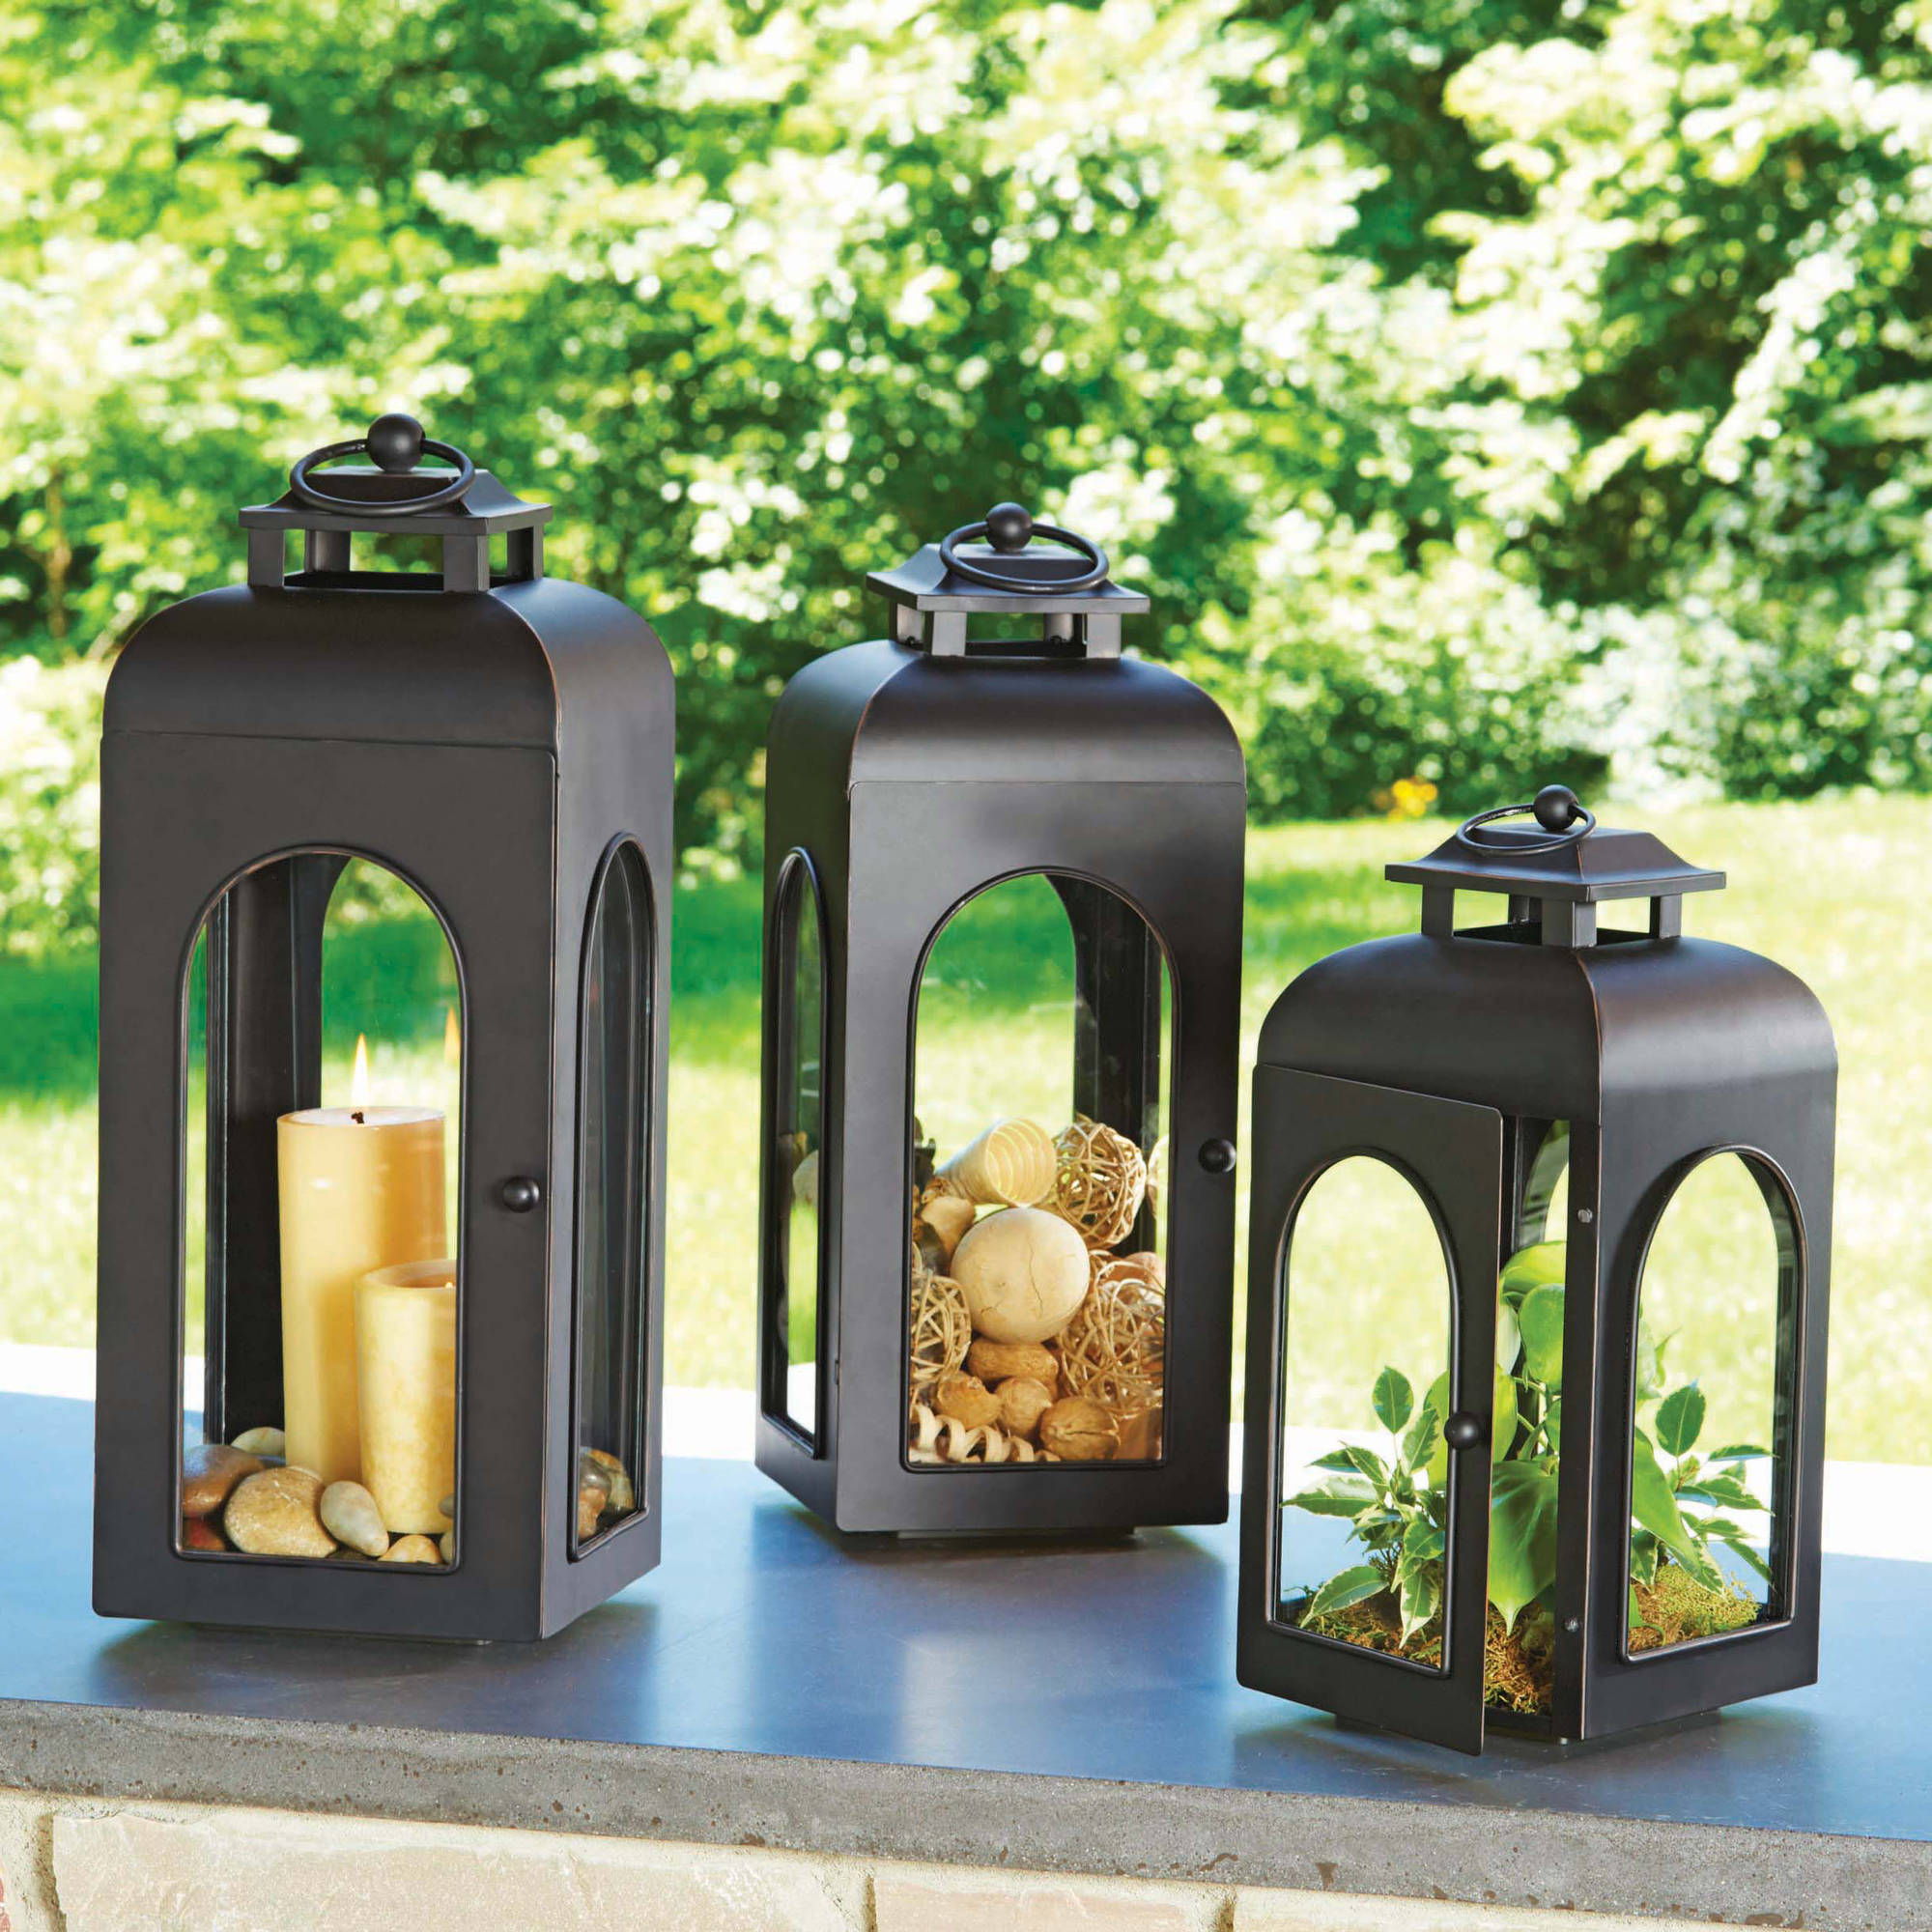 Better Homes and Gardens Domed Metal Outdoor Lantern - Walmart.com